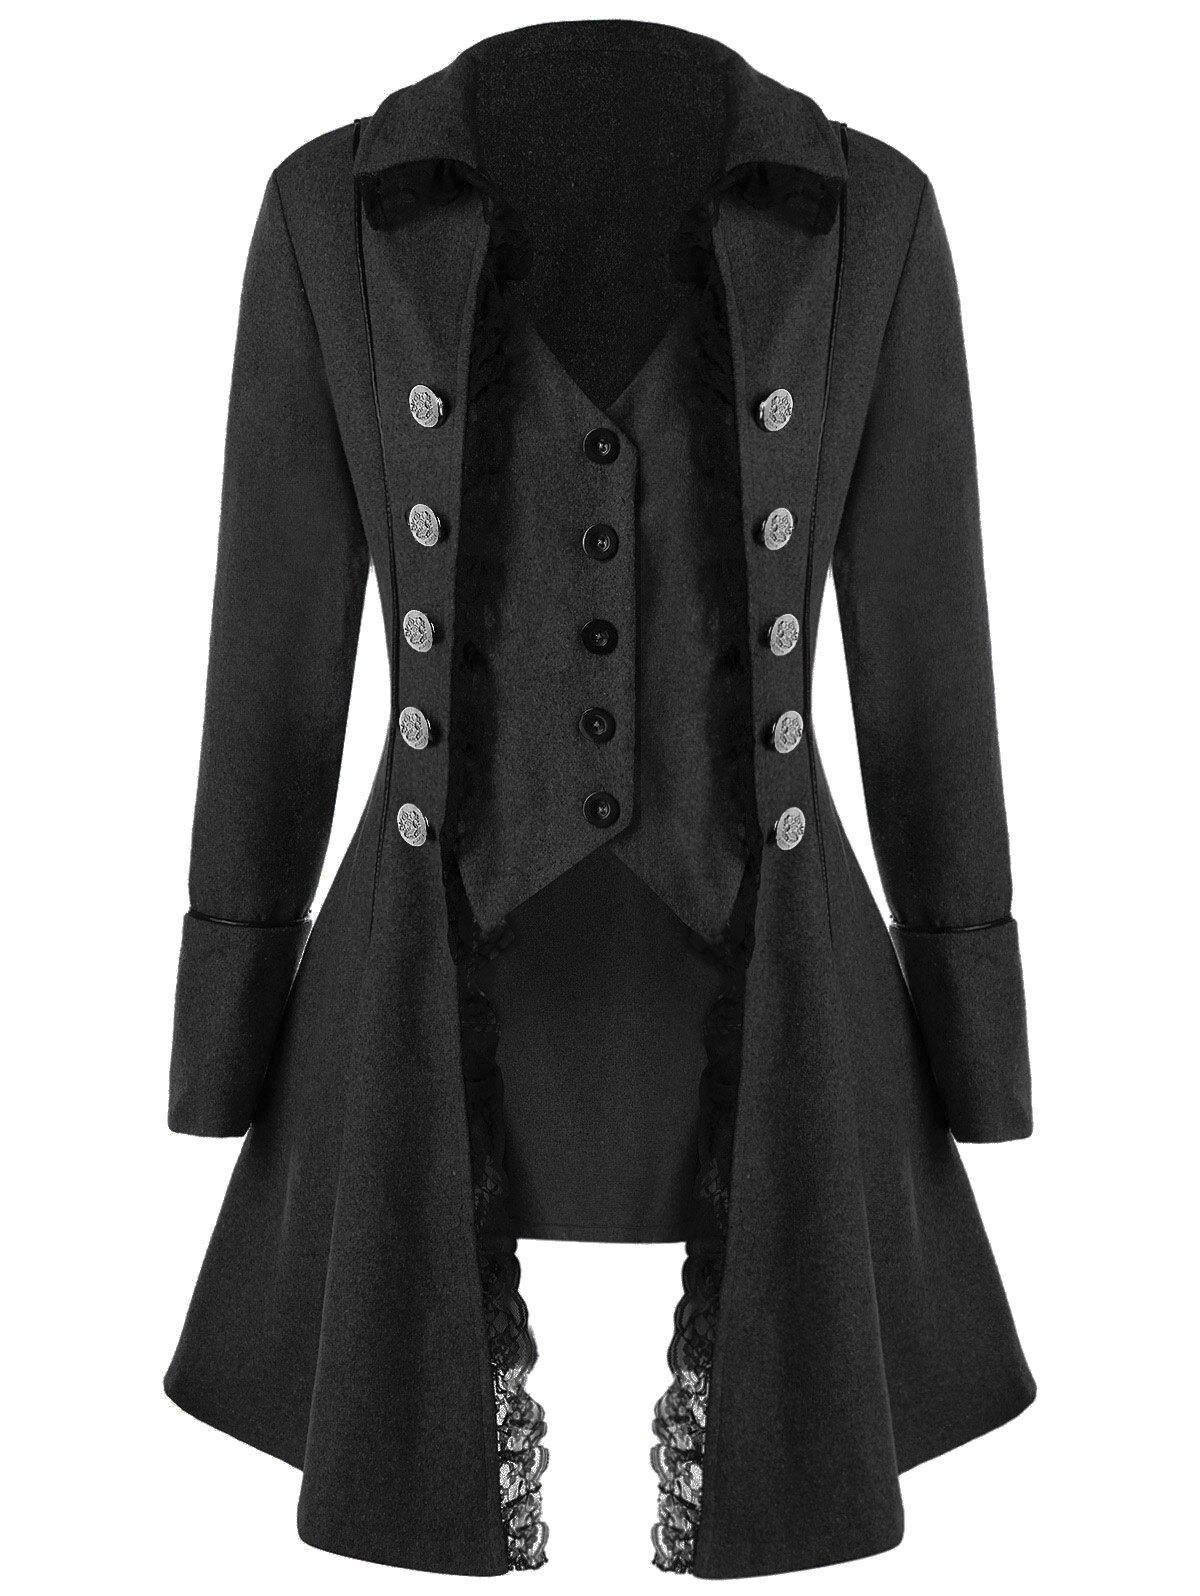 Button Up Lace Trim TailcoatWOMEN<br><br>Size: M; Color: BLACK GREY; Clothes Type: Wool &amp; Blends; Material: Polyester; Type: Slim; Shirt Length: Long; Sleeve Length: Full; Collar: Turn-down Collar; Pattern Type: Solid; Style: Gothic; Season: Fall,Spring; Weight: 0.7300kg; Package Contents: 1 x Coat;